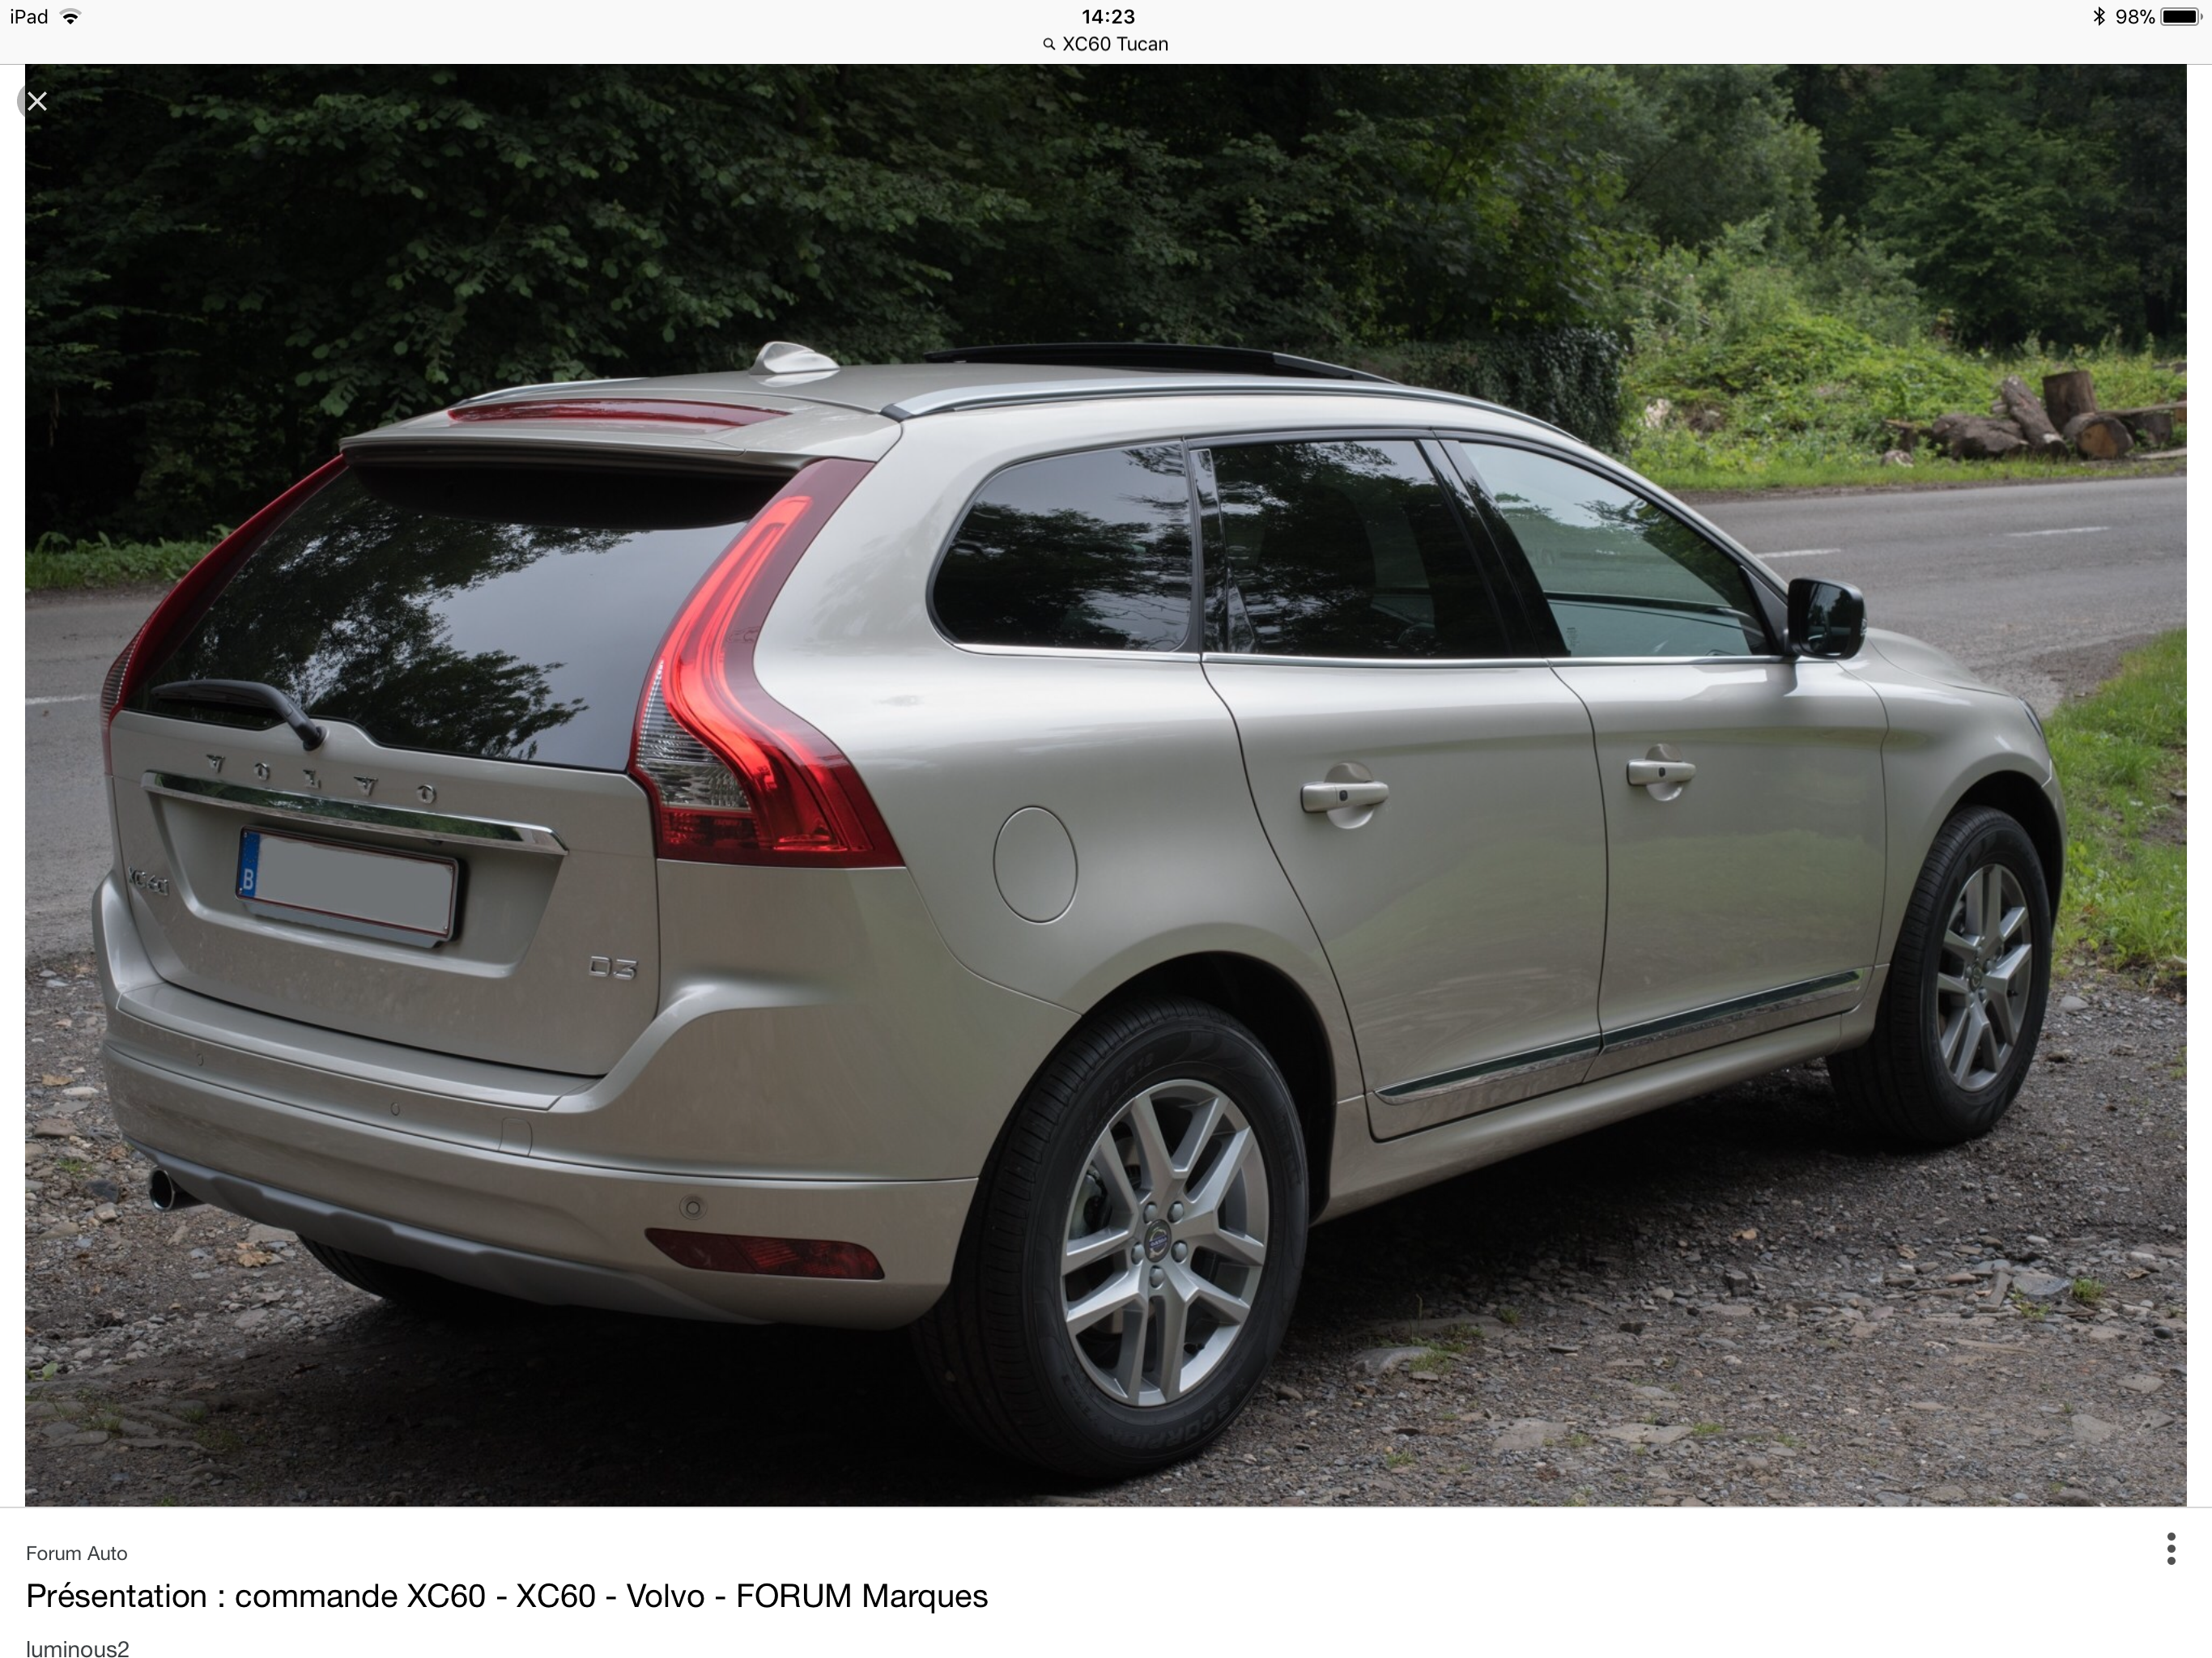 Pin by Adam Kowalczyk on Cars (With images) Volvo xc60